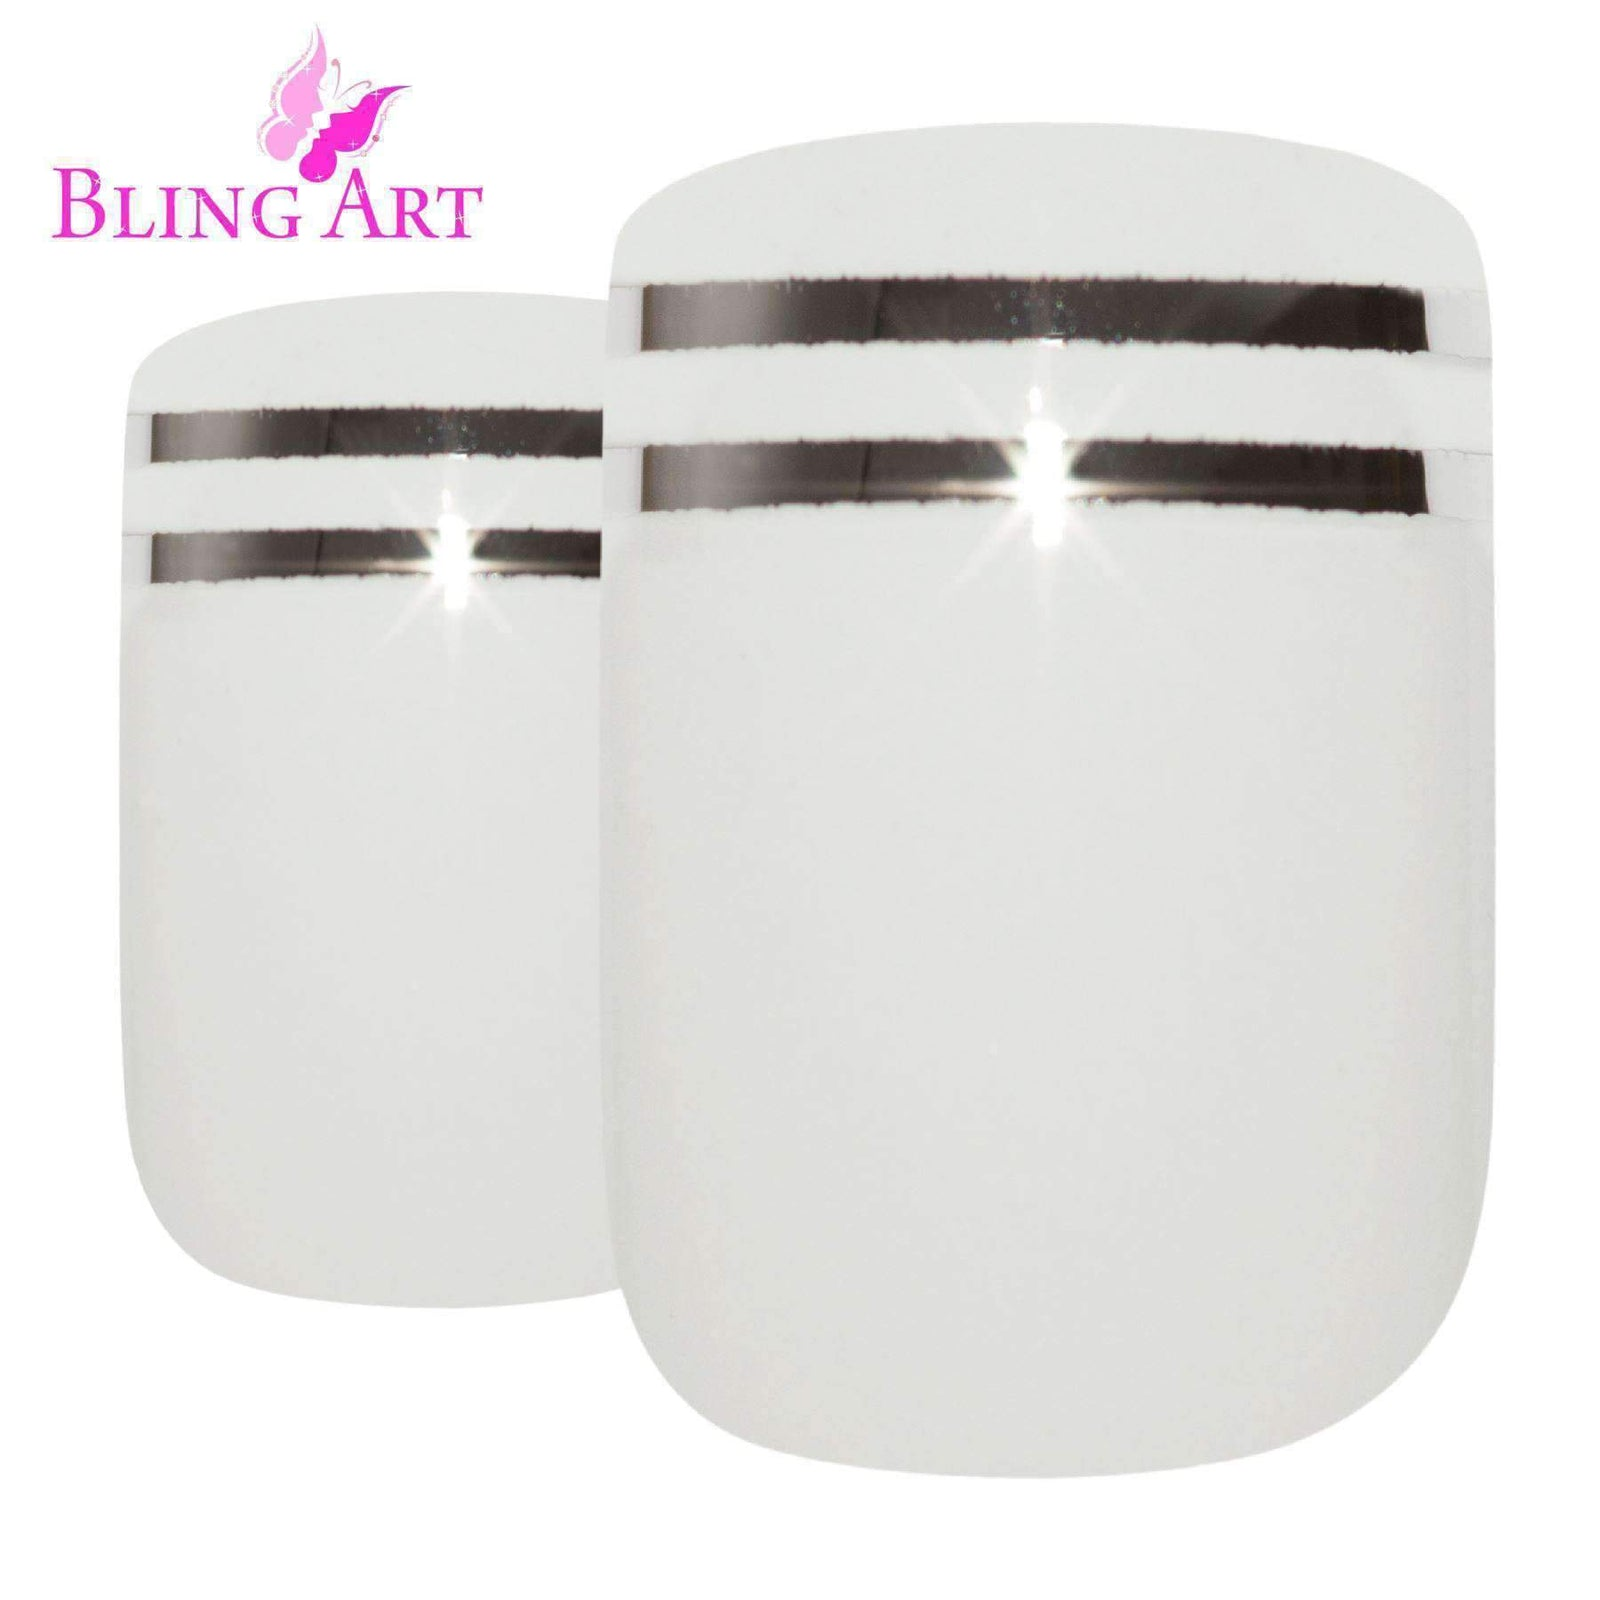 False Nails by Bling Art White Silver French Squoval 24 Fake Medium